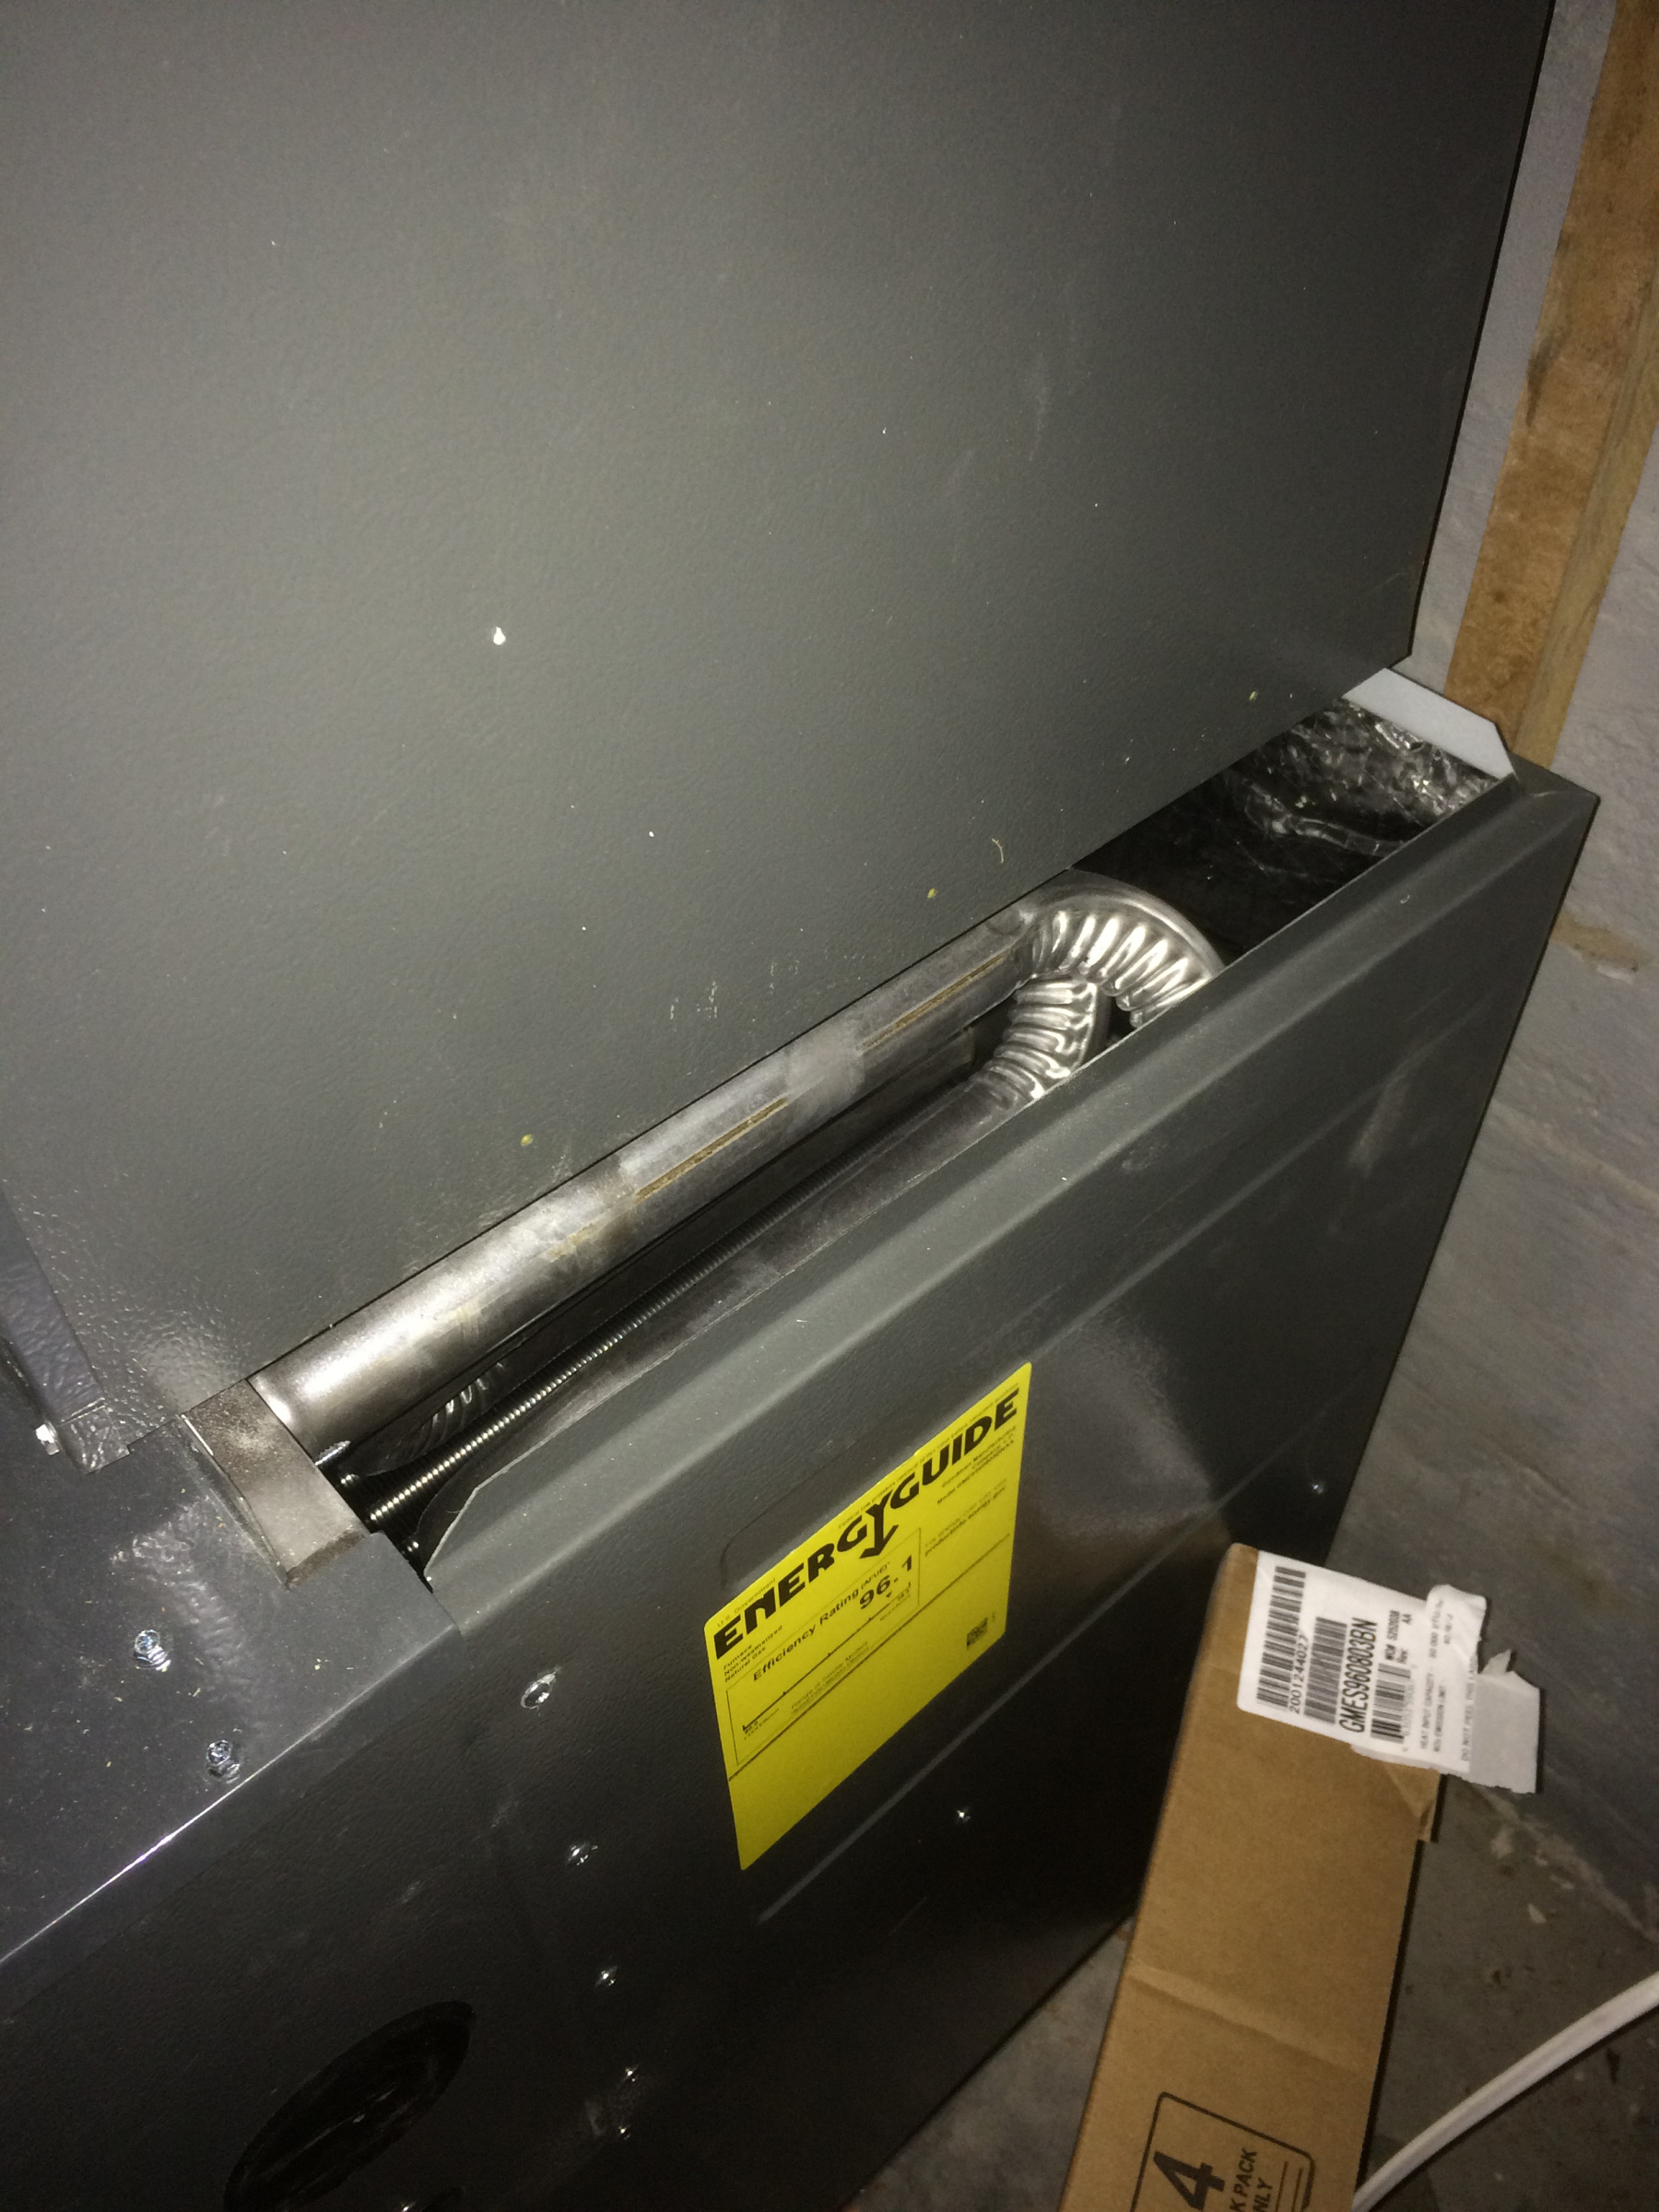 Coil Case Smaller Than Furnace Opening-86355800_507169133567284_4244115699259146240_n.jpg